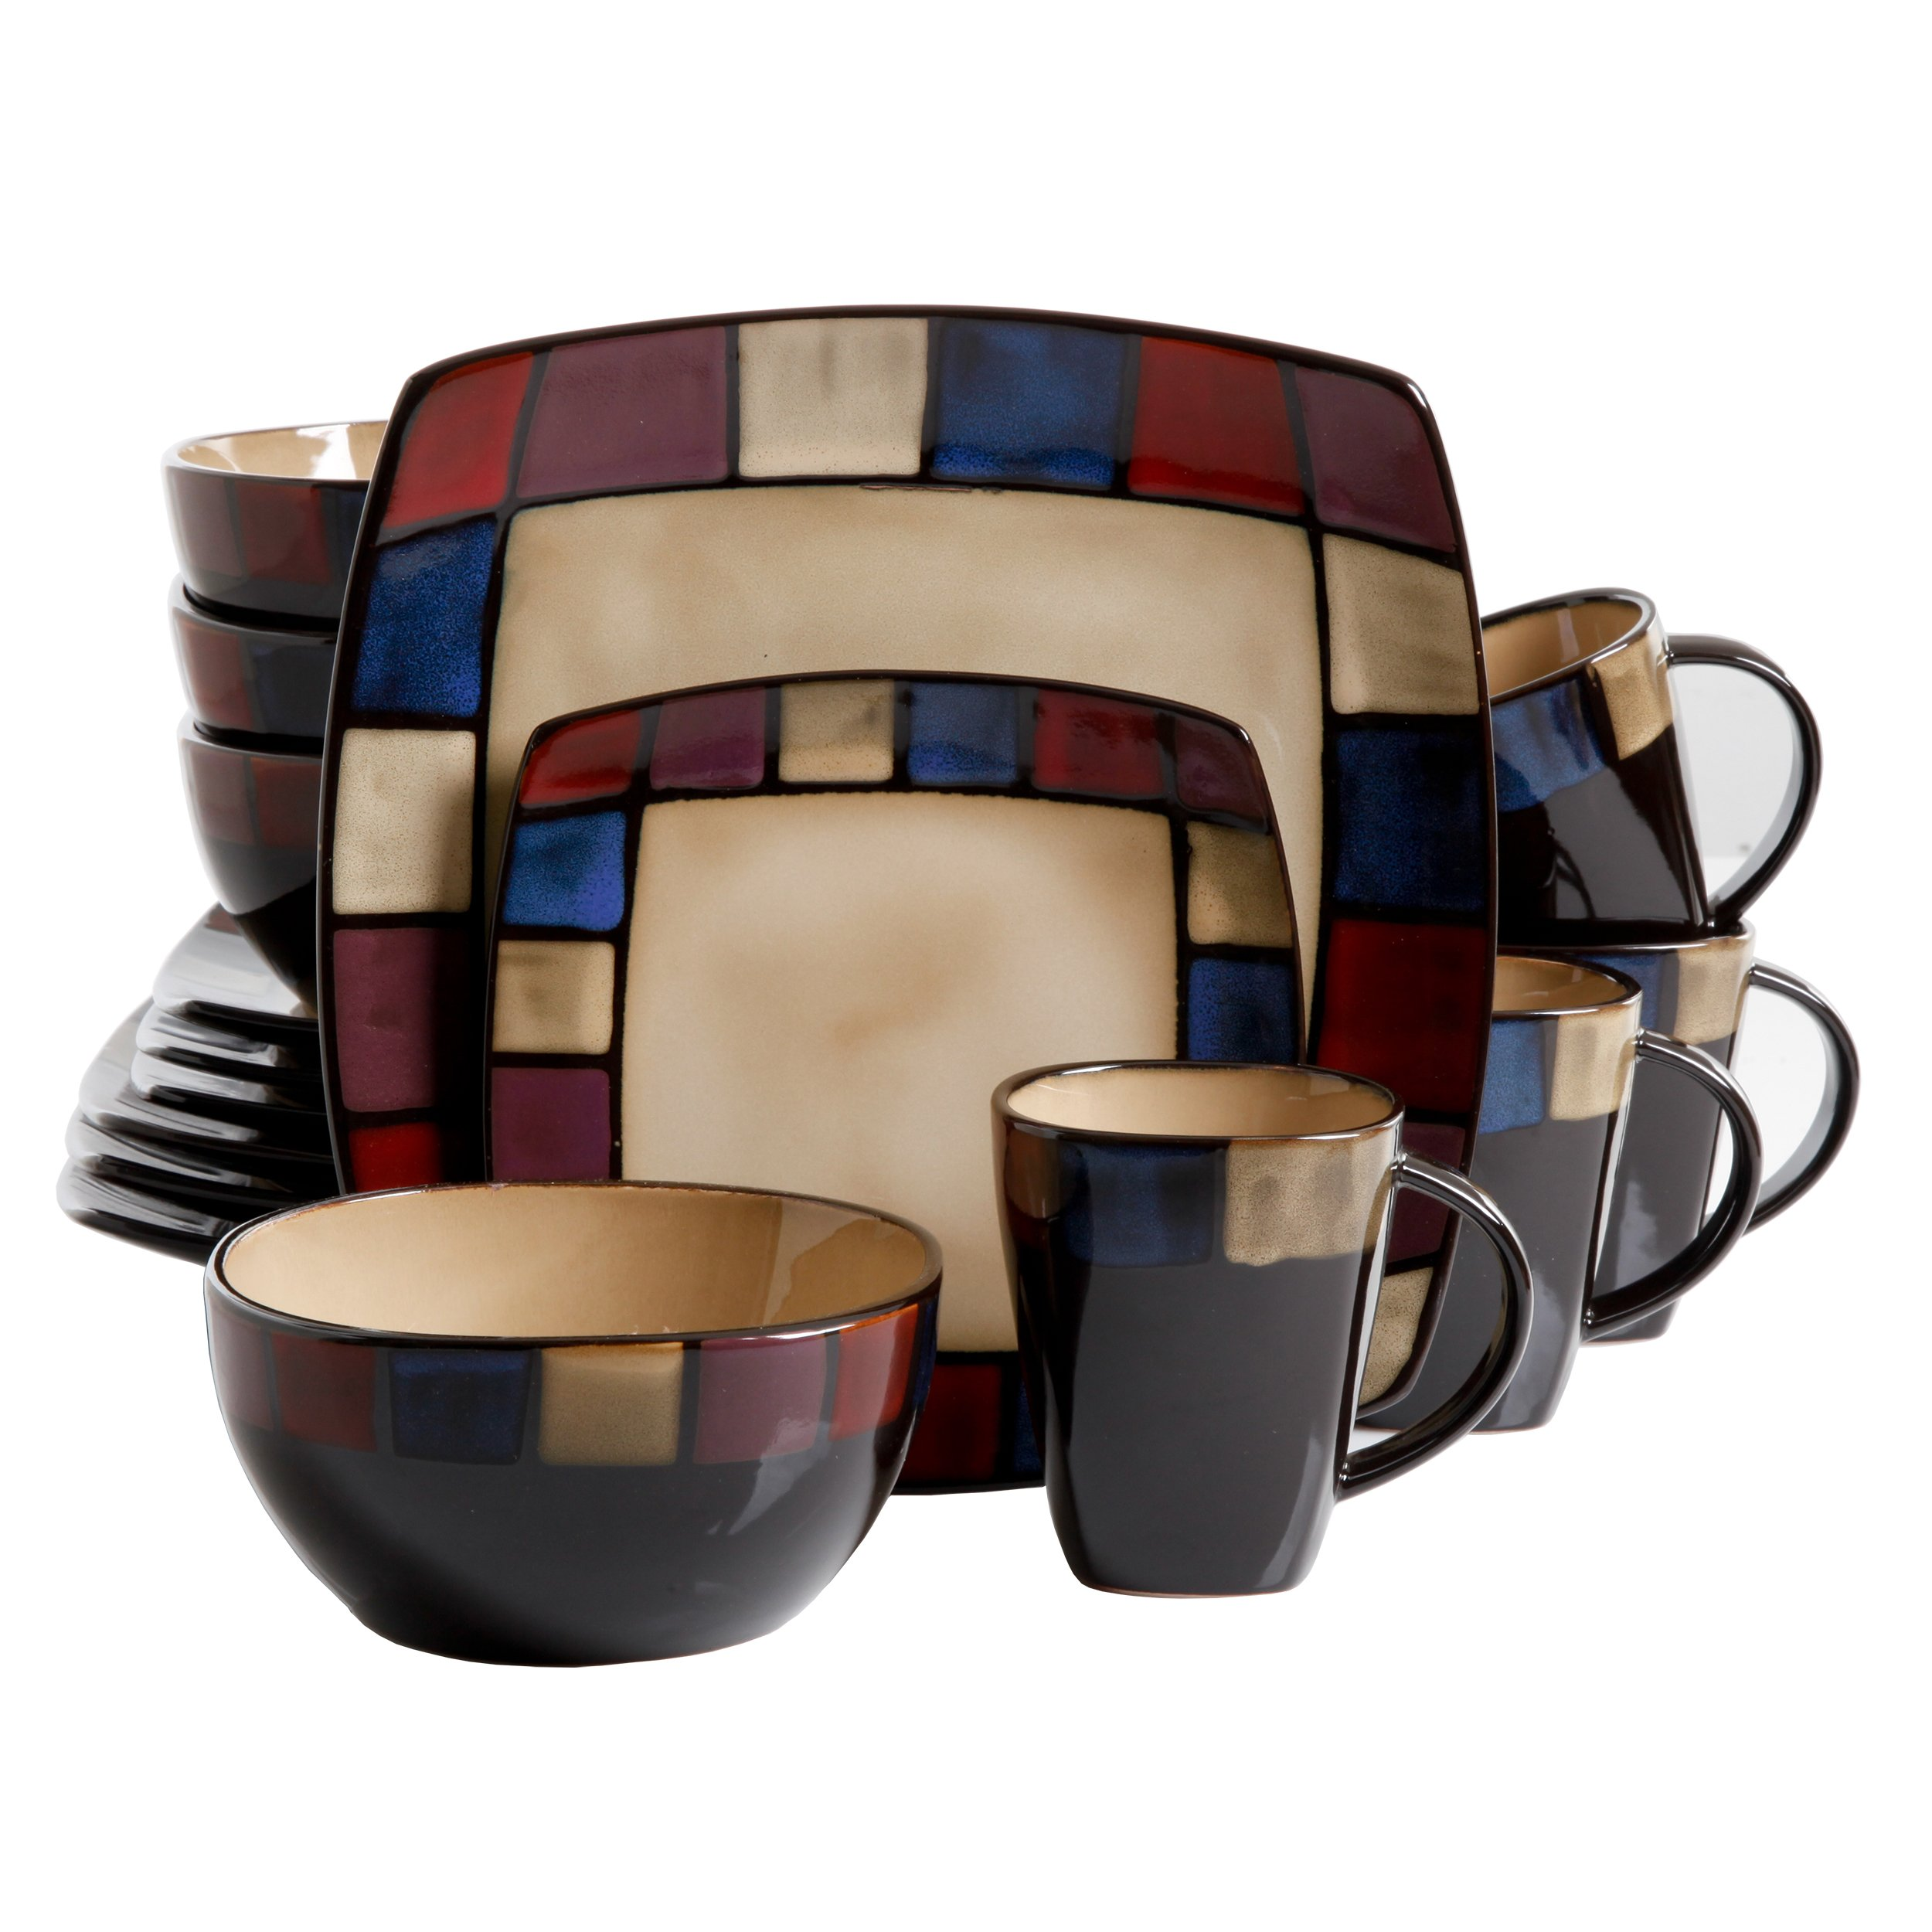 Gibson Elite Soho Lounge Square 16-Piece Mosaic Reactive Glaze Dinnerware Set Service of 4, Stoneware, Multicolor, by Gibson